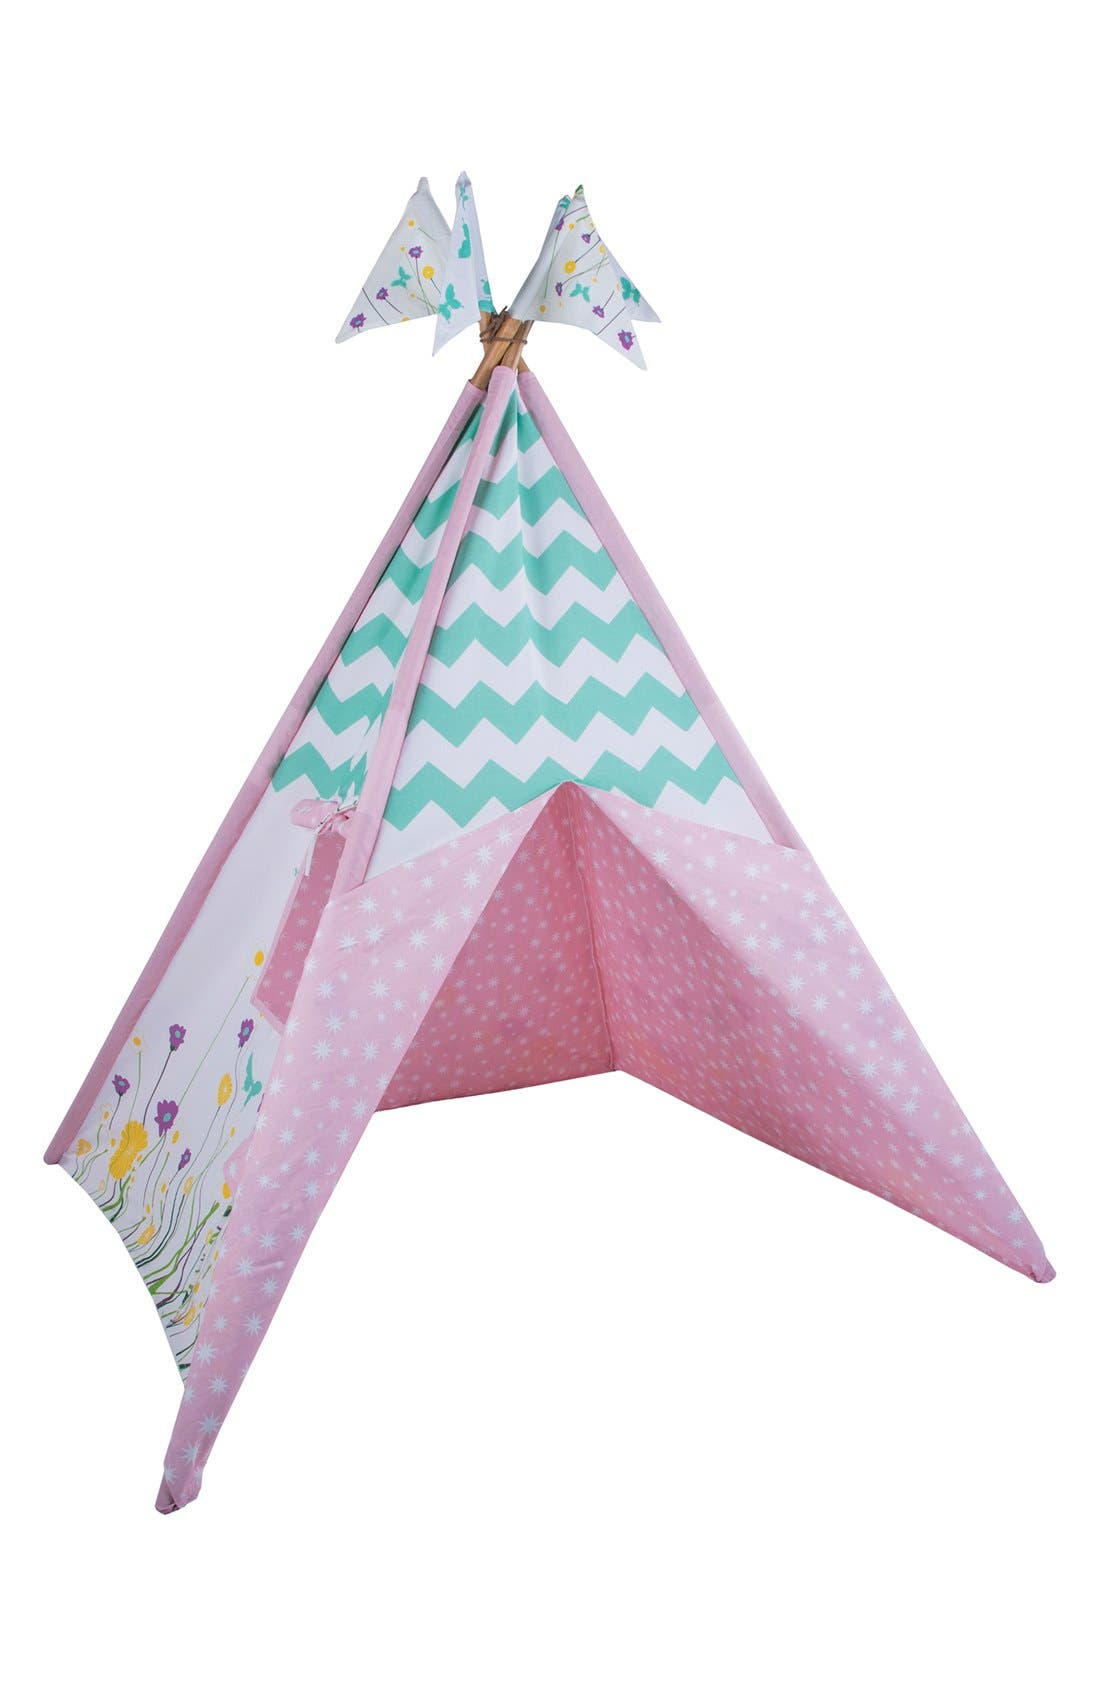 Alternate Image 1 Selected - Pacific Play Tents 'Wildflowers' Cotton Canvas Teepee